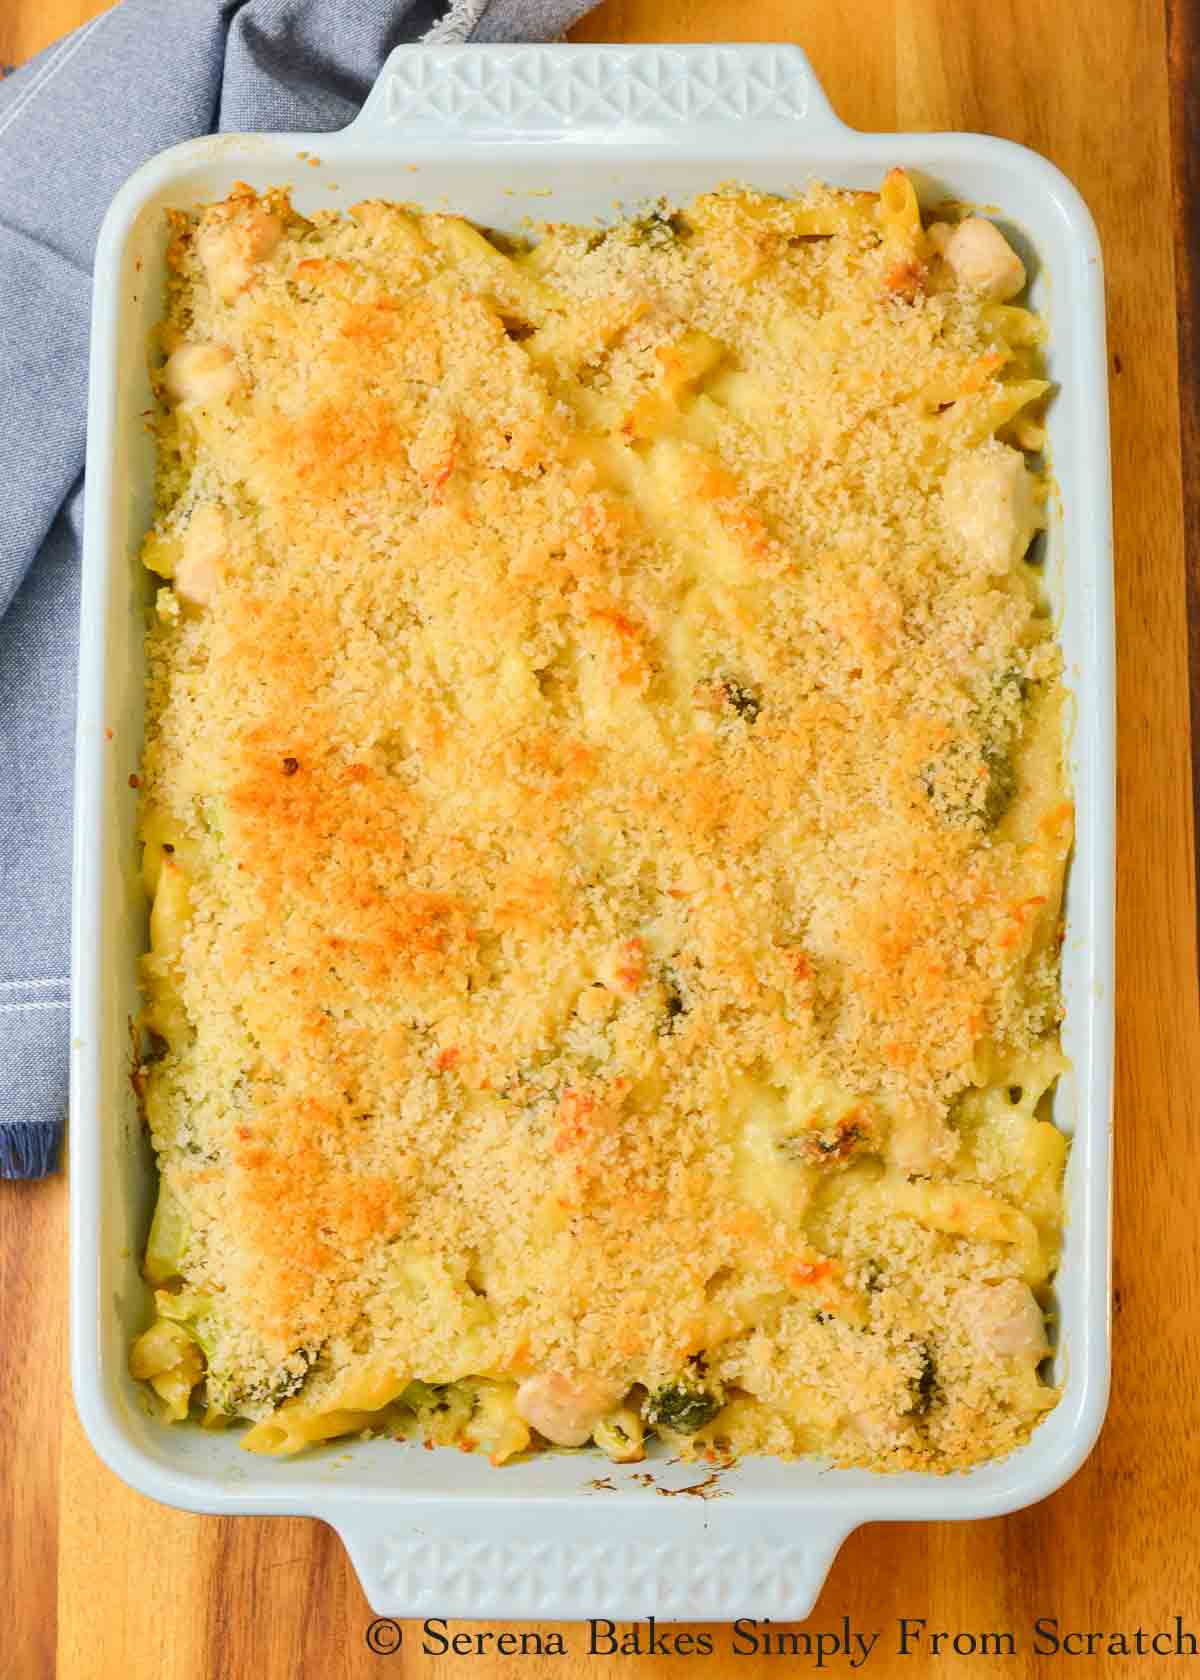 Chicken Broccoli Casserole in a white cheese sauce covered with panko bread crumbs in a light blue casserole dish.